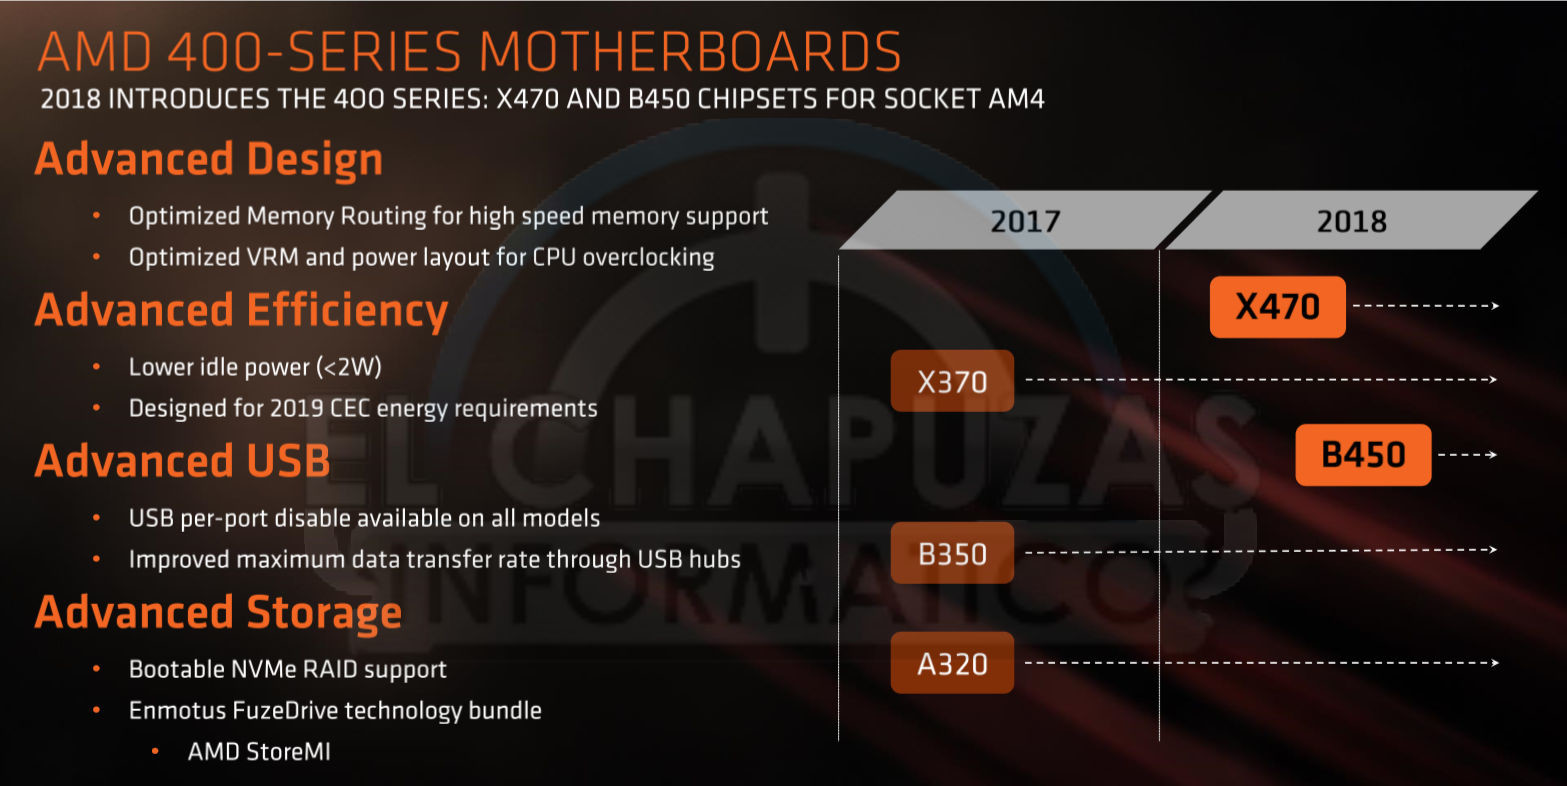 hight resolution of no amd technical document we read tells us what xfr 2 0 enhanced is and how it s different from xfr 2 0 separately listed in that table